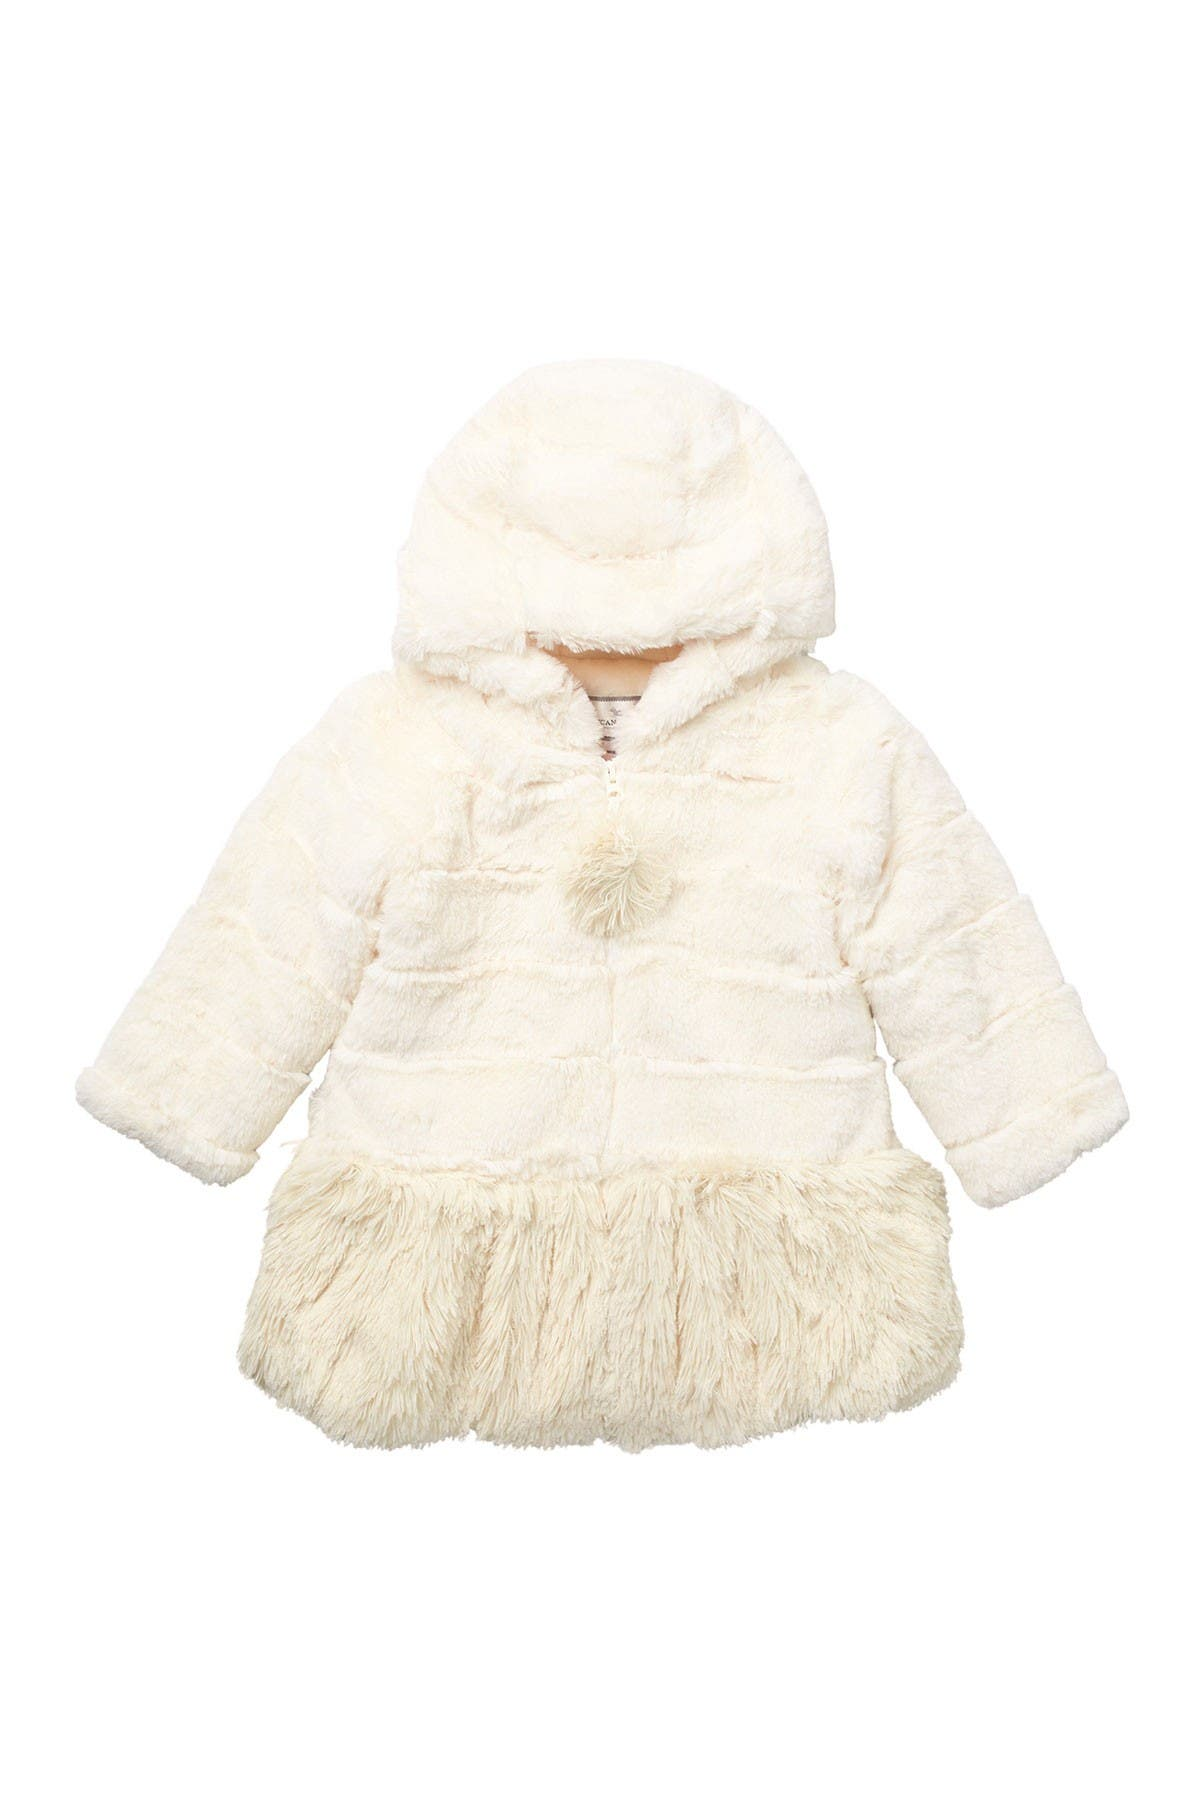 Image of WIDGEON Hooded Shaggy Bottom Faux Fur Coat